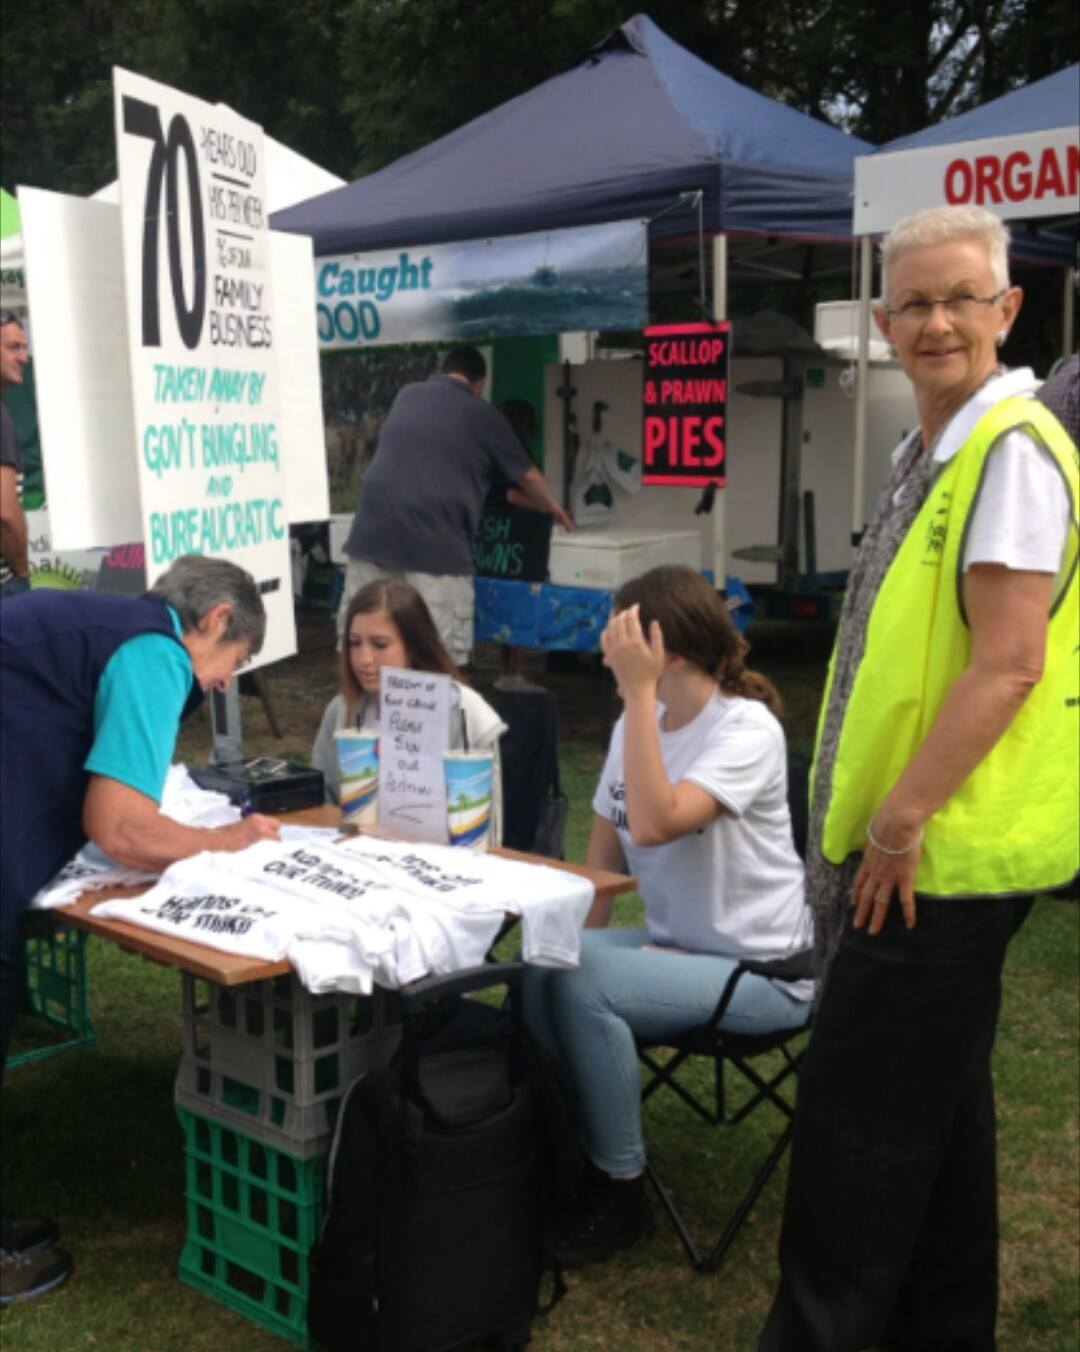 Collecting signatures for the petition at a farmers market in Gippsland